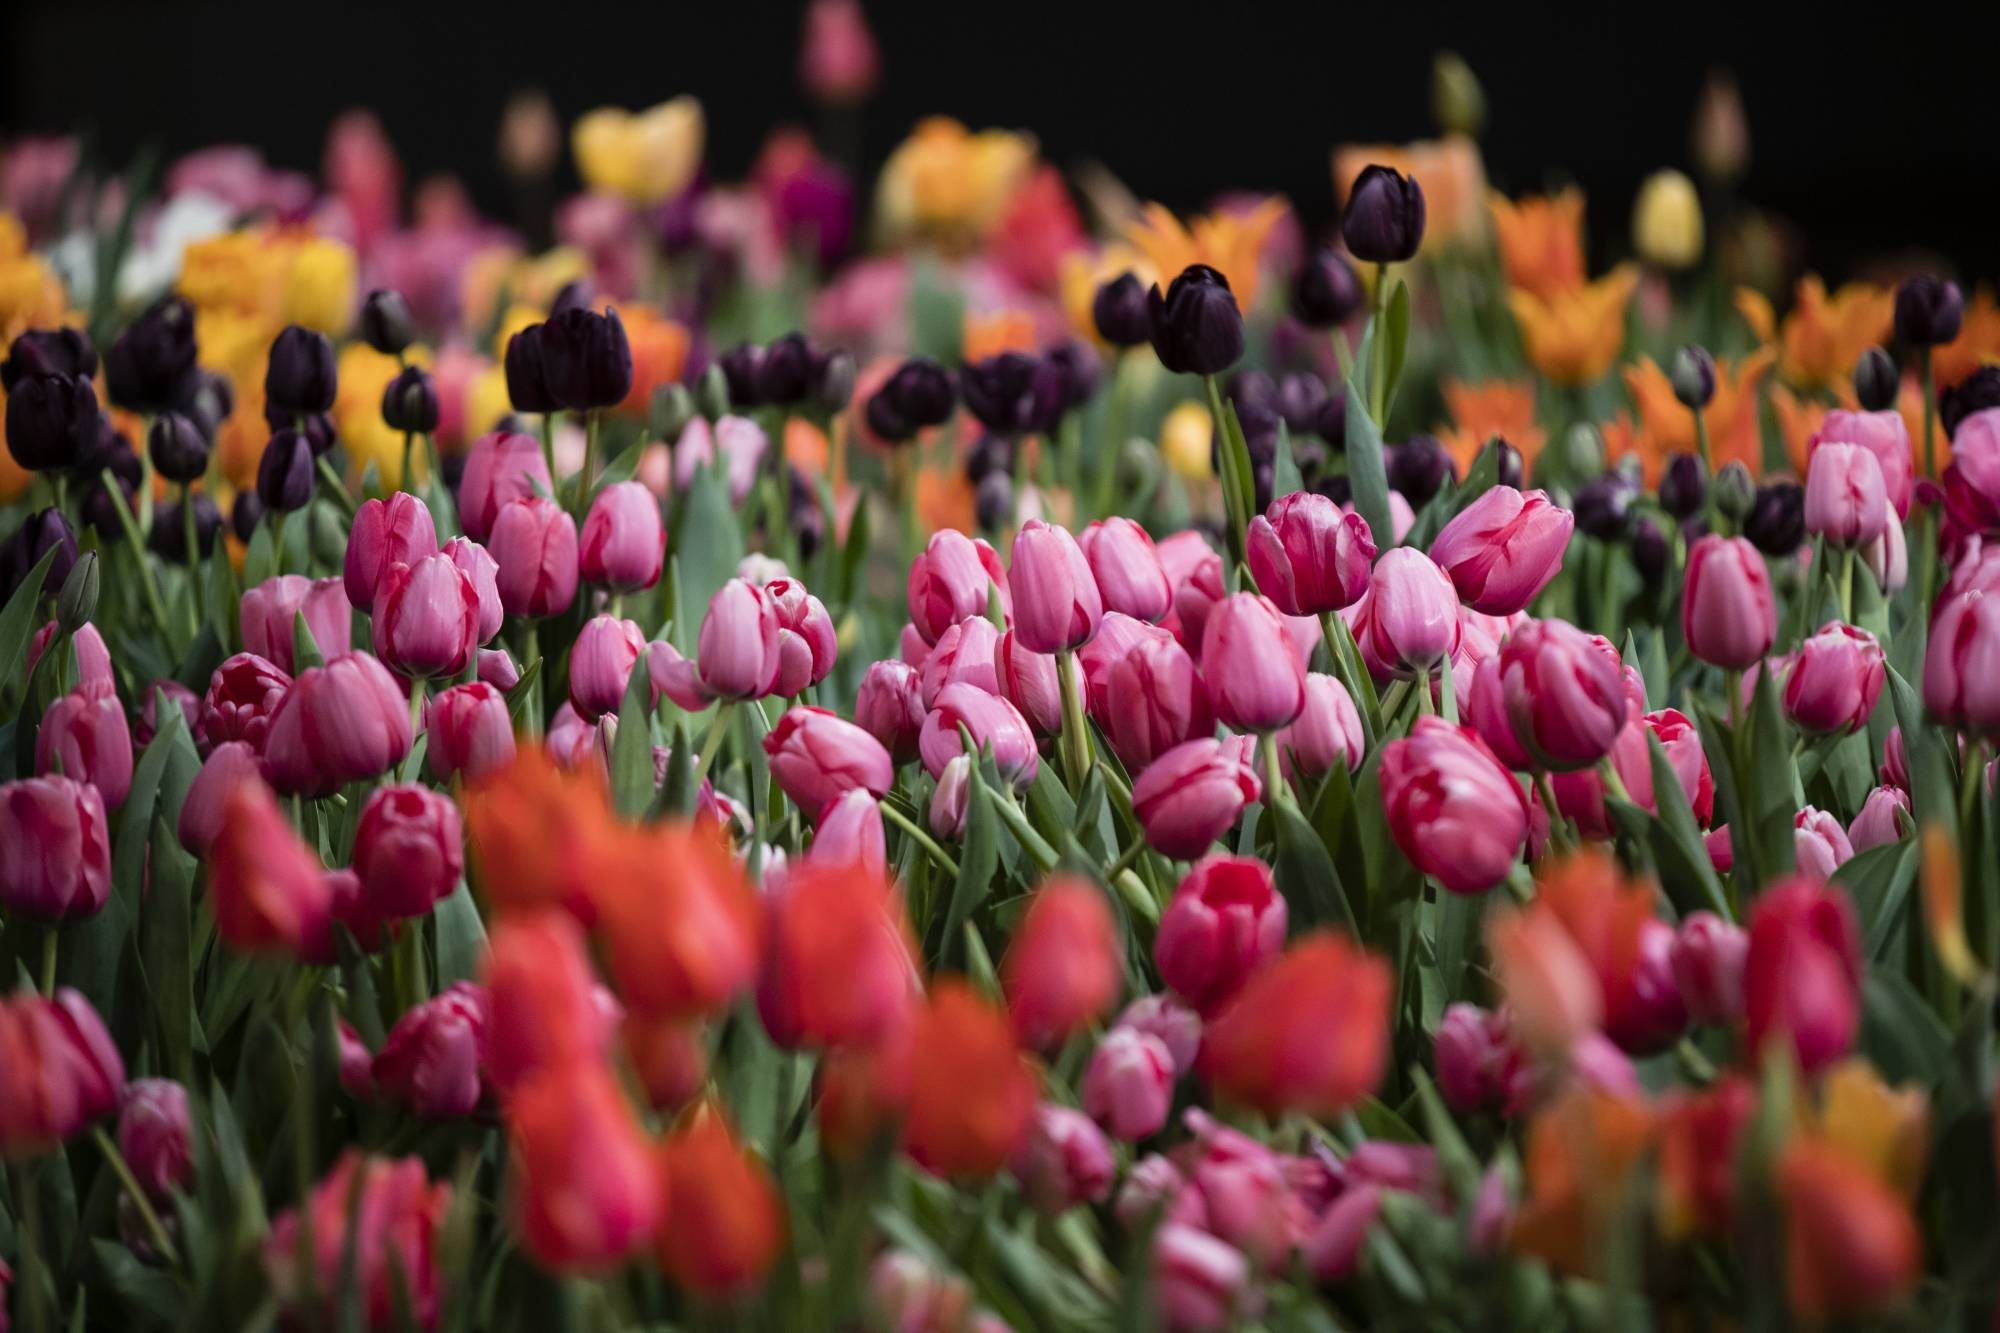 Philadelphia Flower Show gives visitors a taste of Holland